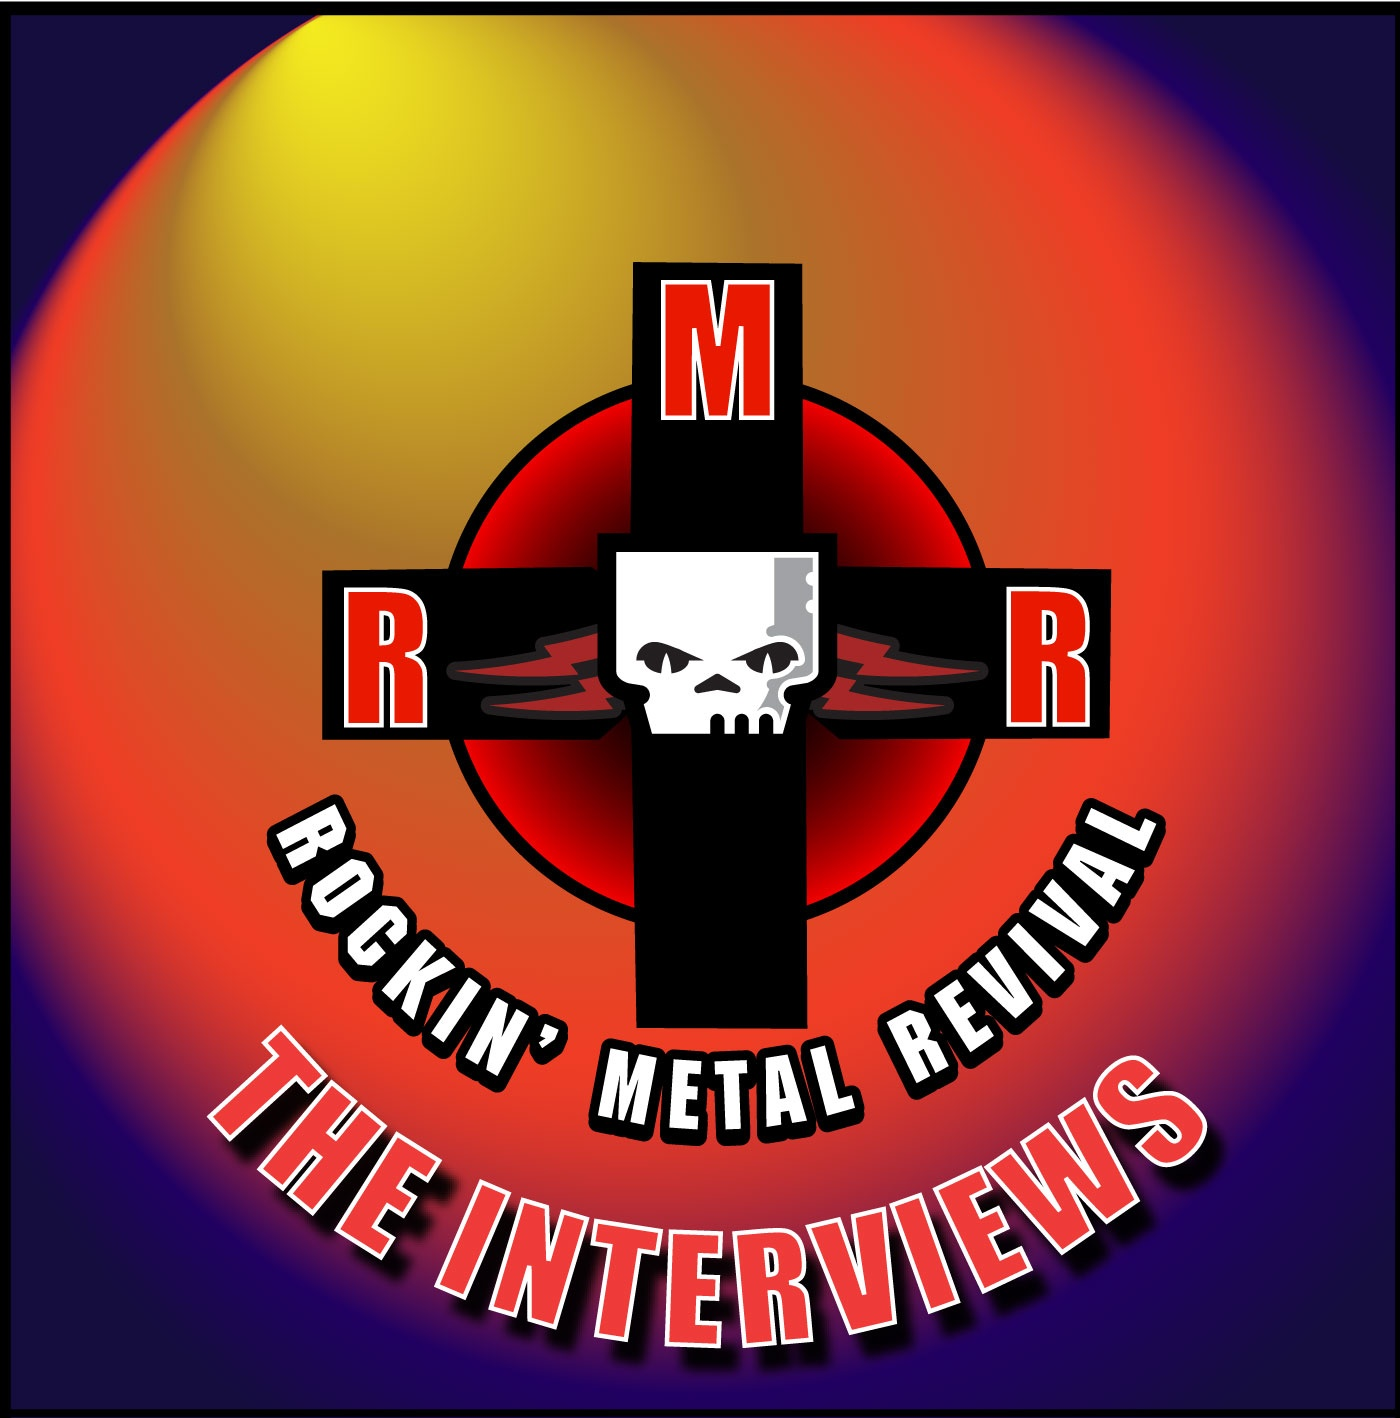 The Interviews - Rockin' Metal Revival